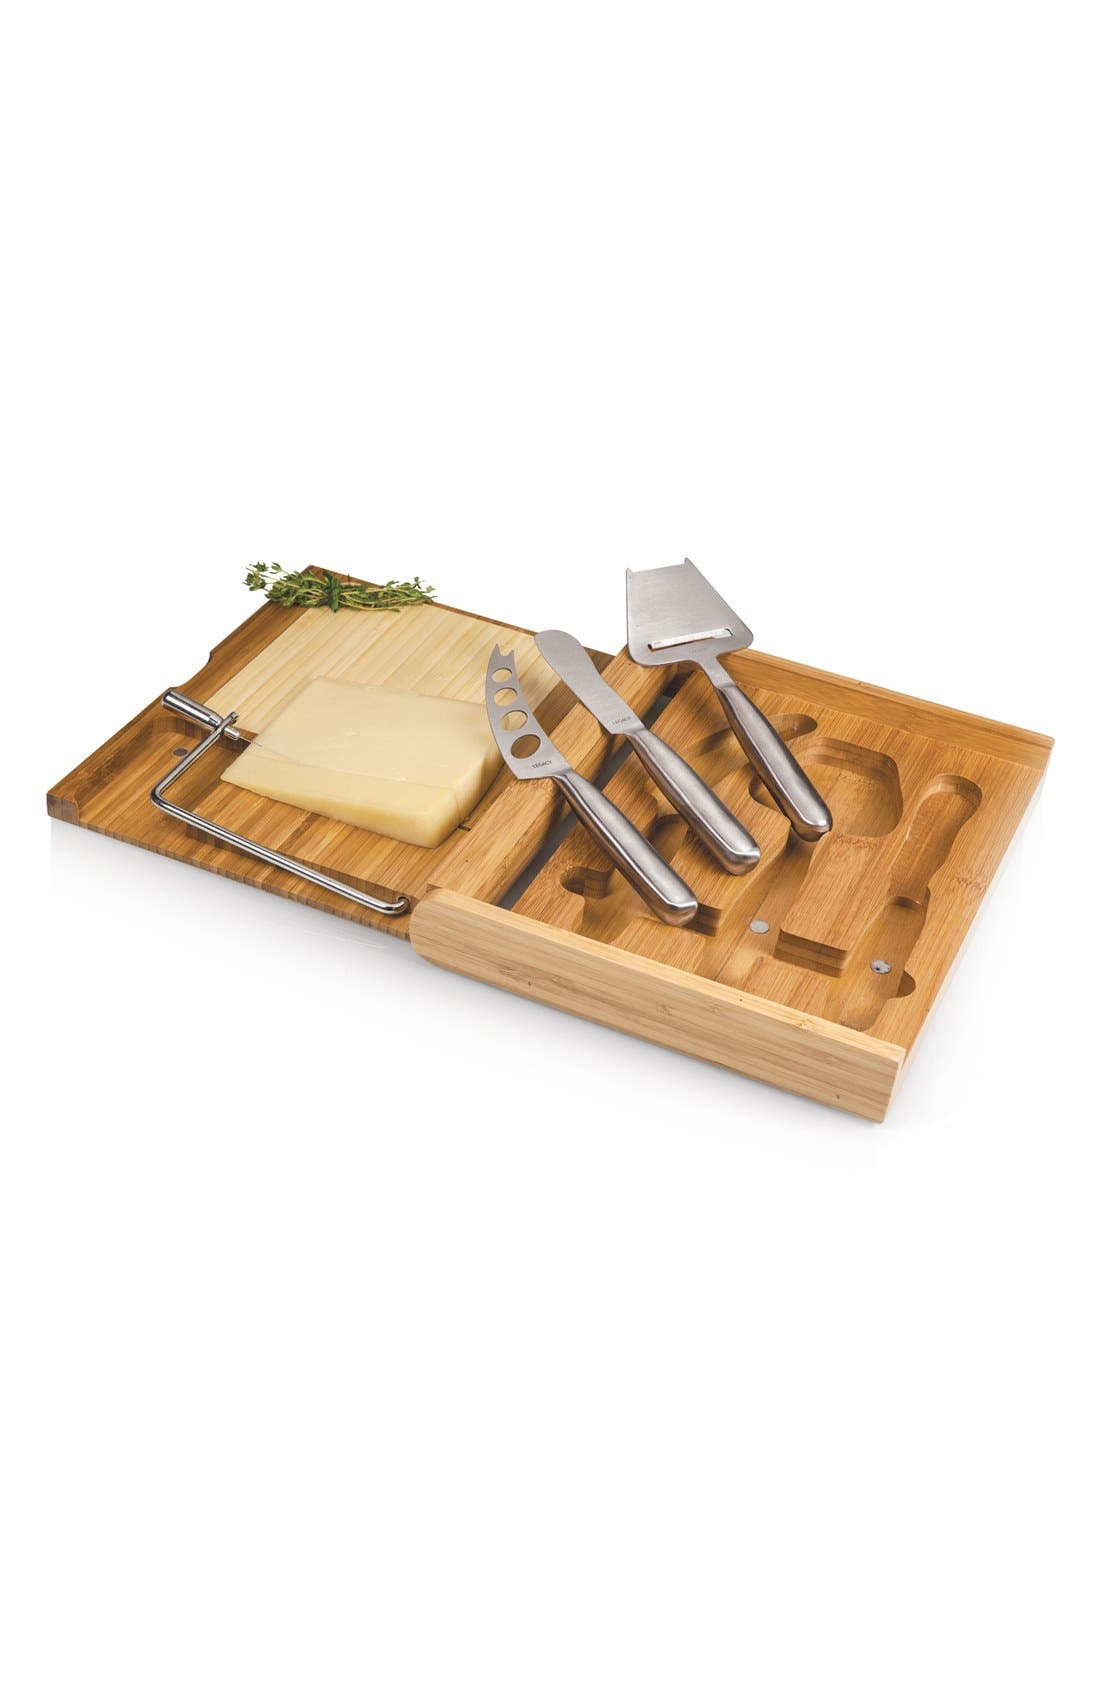 'Soirée' Cheese Board Set,                             Alternate thumbnail 4, color,                             200